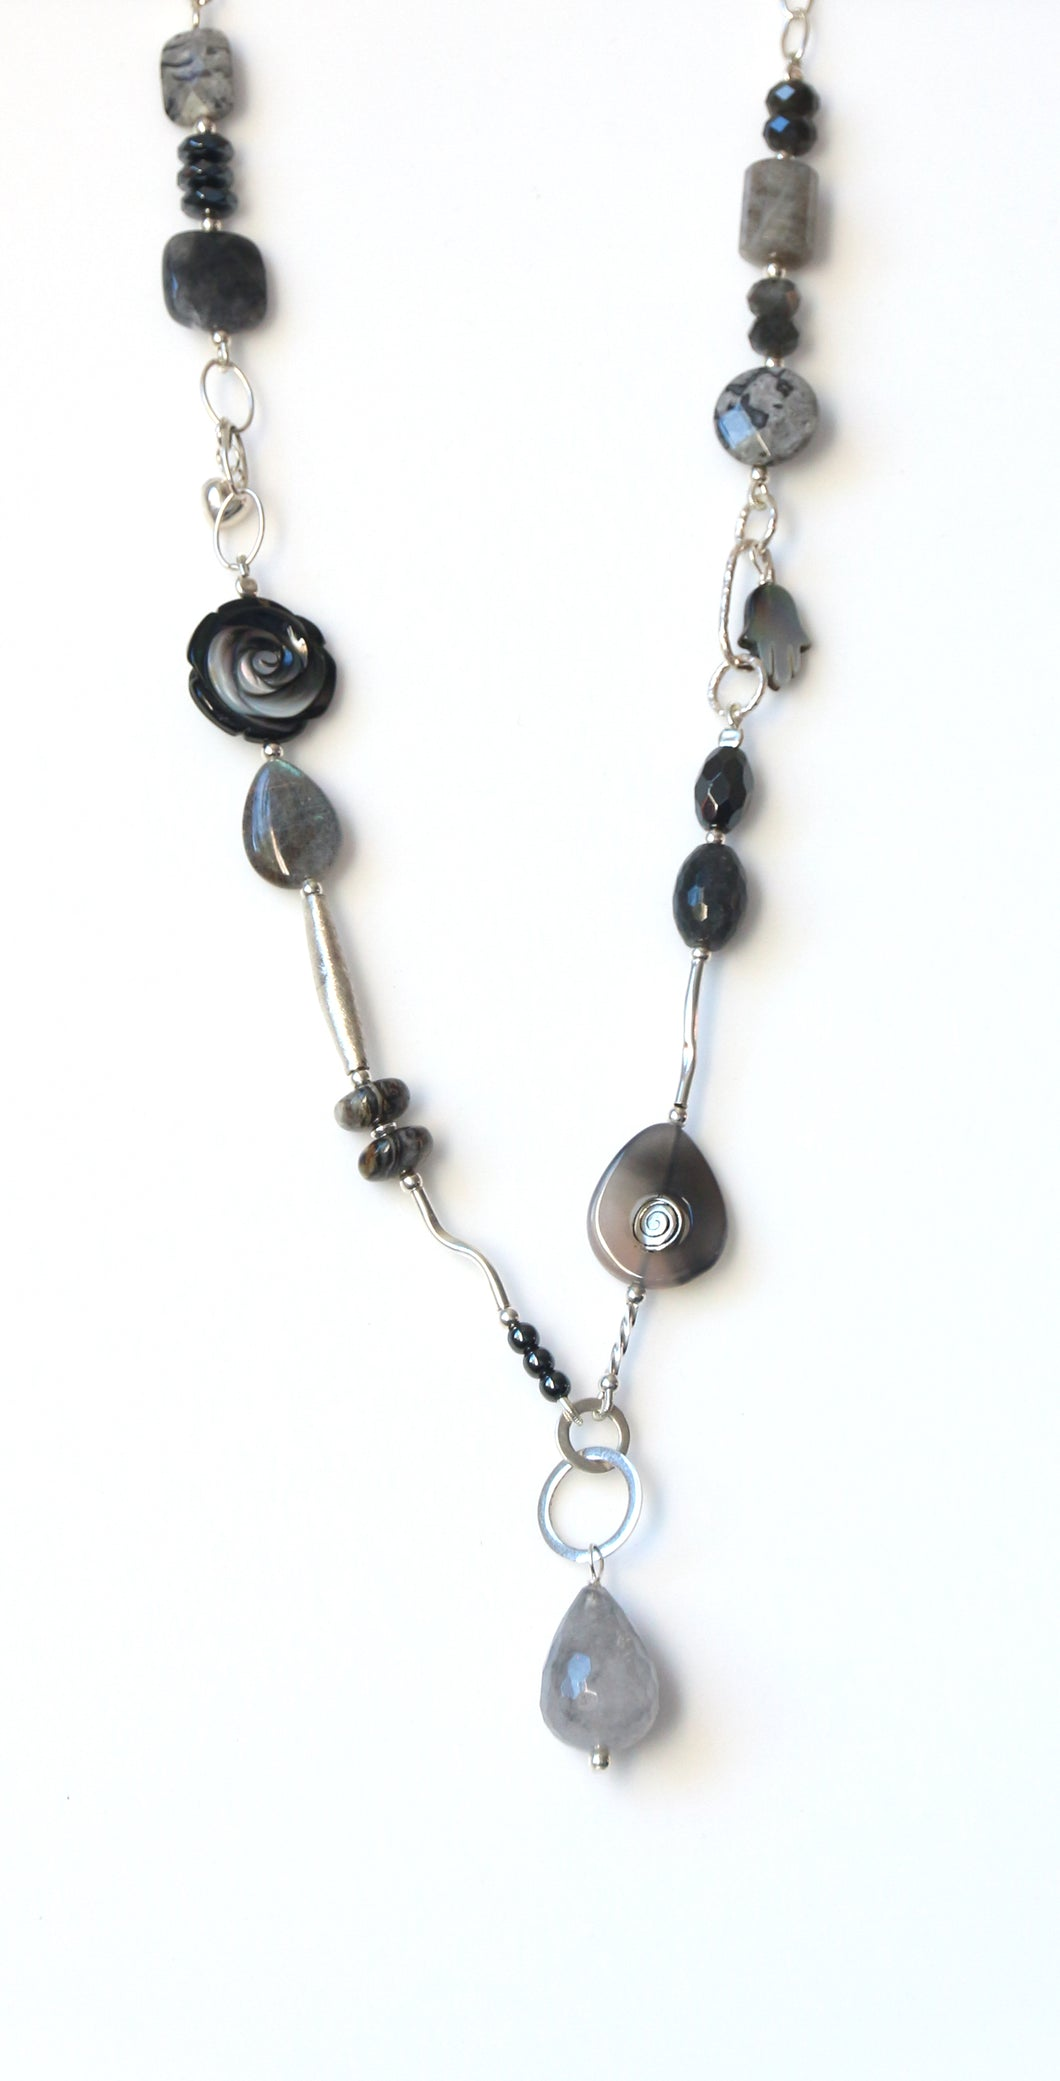 Australian Handmade Grey Necklace with Labradorite Agate Grey Quartz Mother of Pearl and Sterling Silver